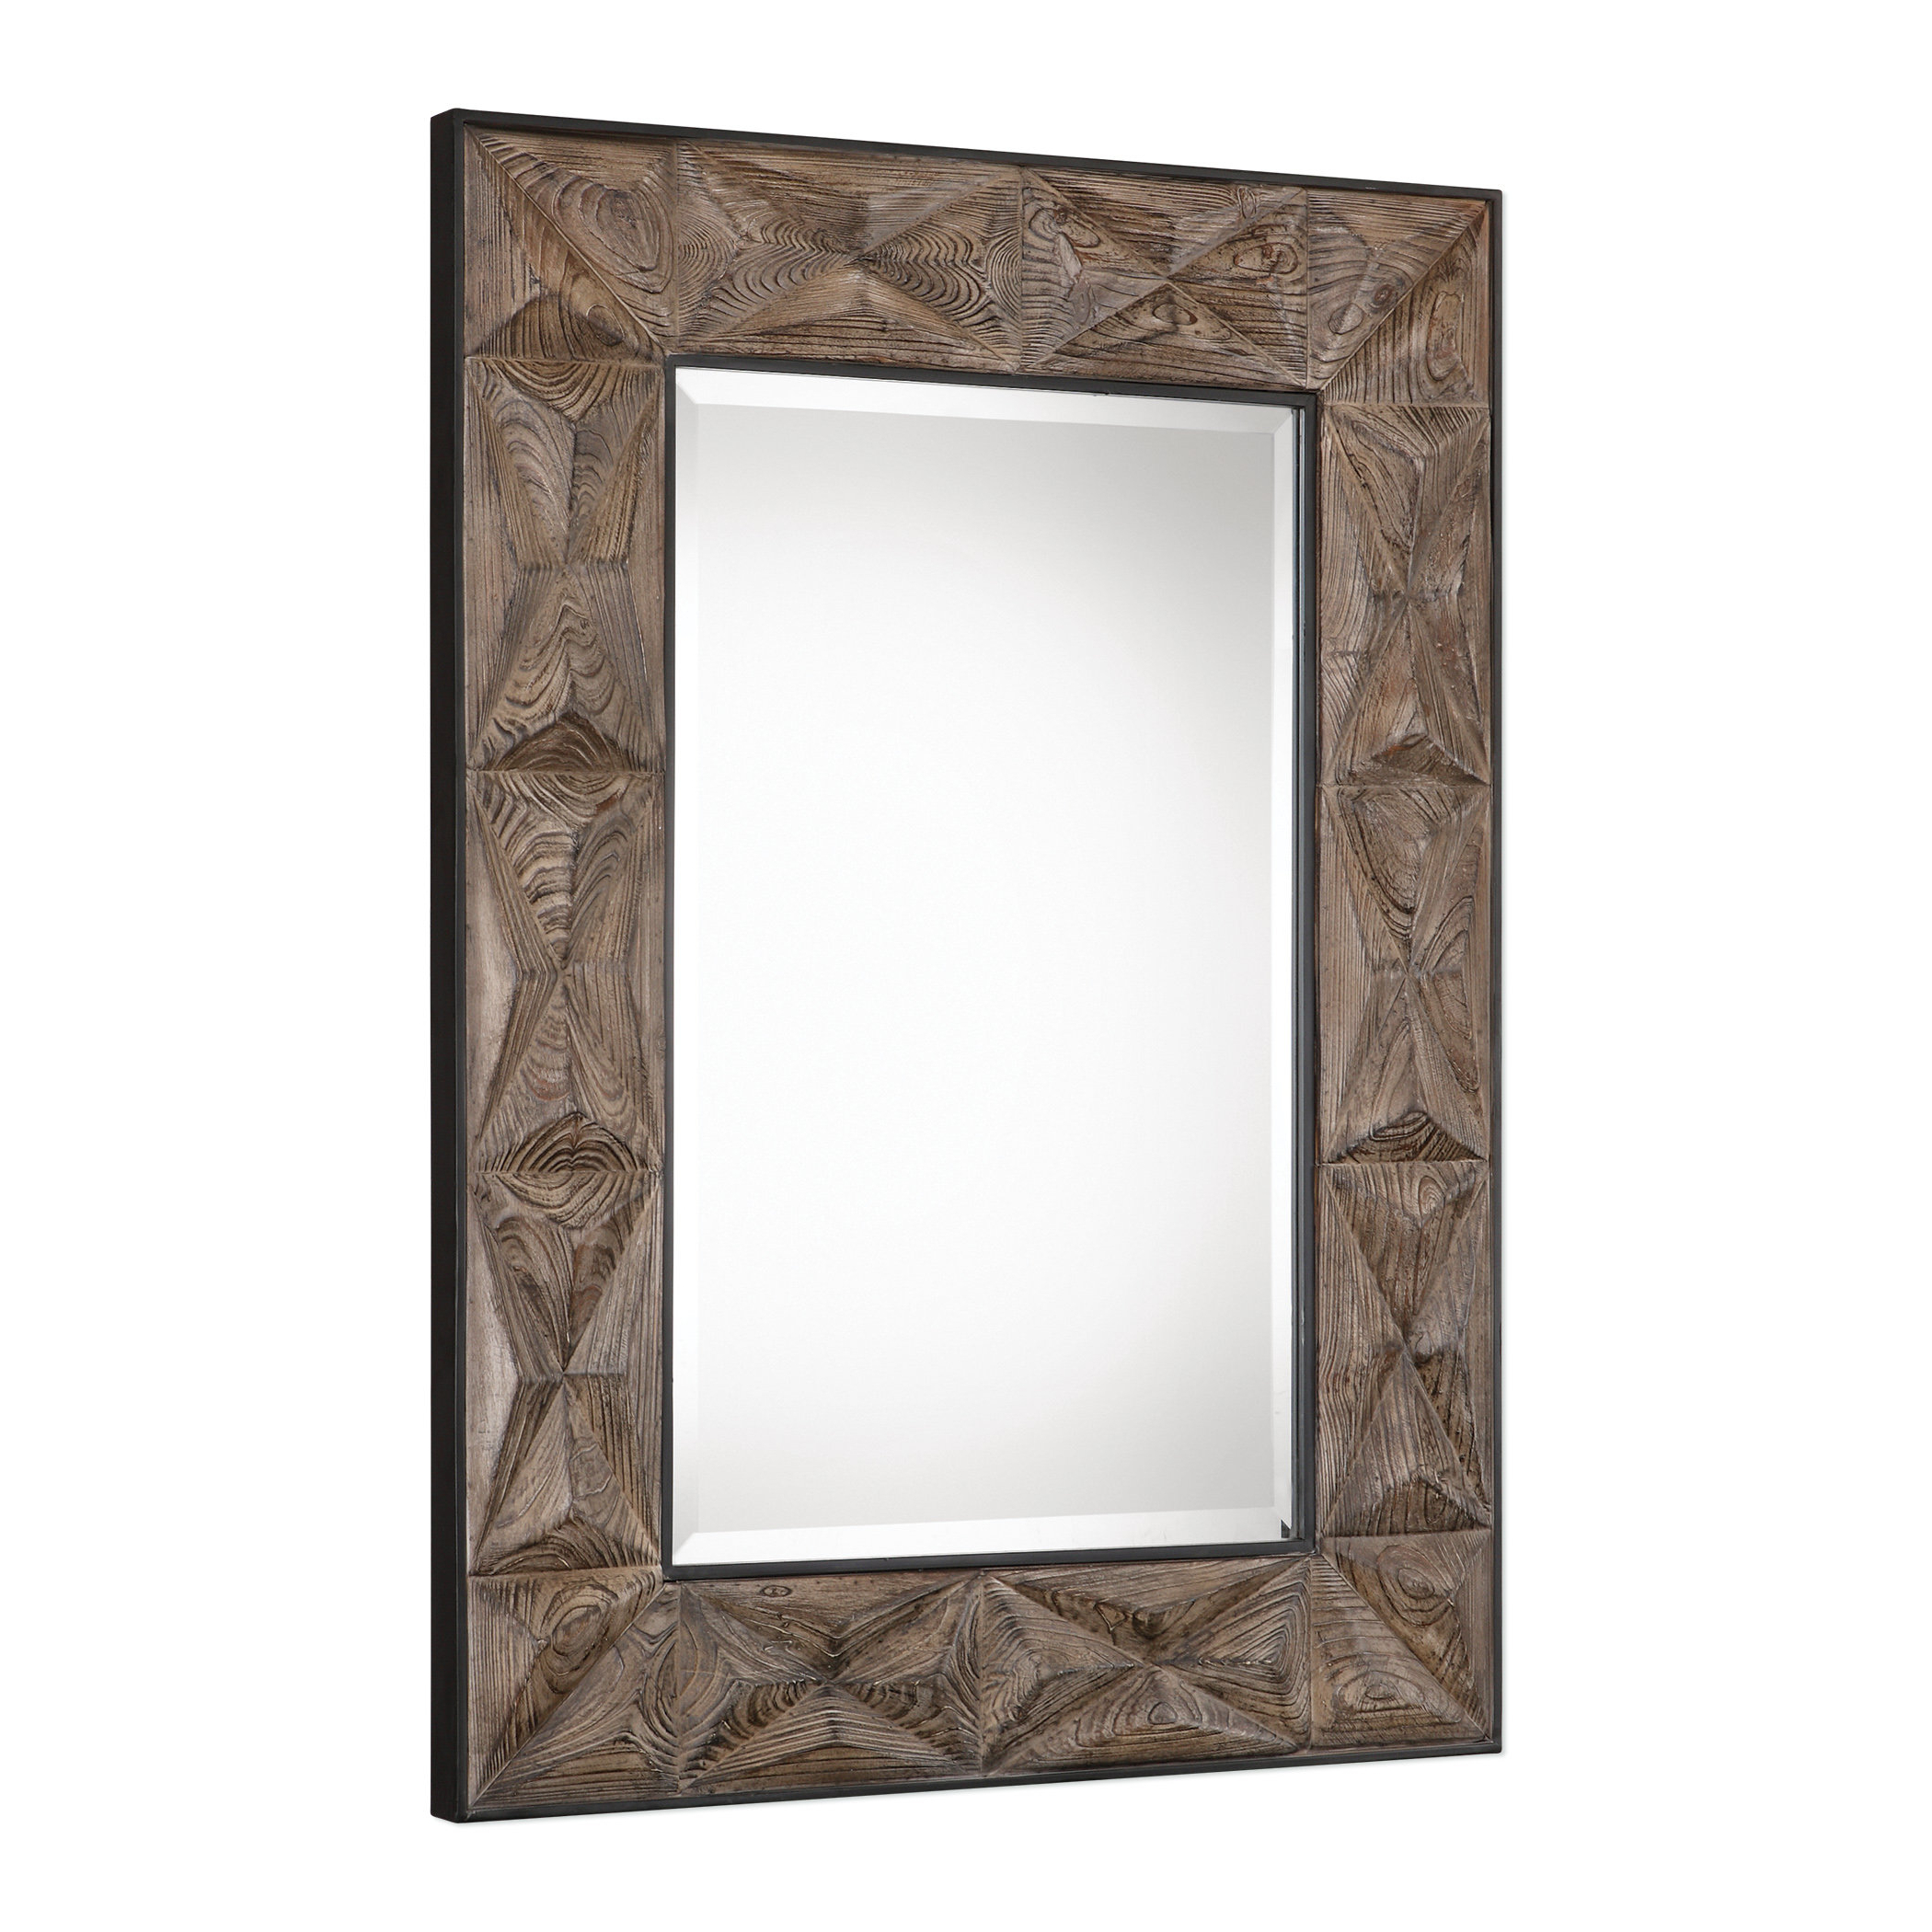 Widely Used Longwood Rustic Beveled Accent Mirrors Pertaining To Traditional Aged Beveled Accent Mirror (View 17 of 20)